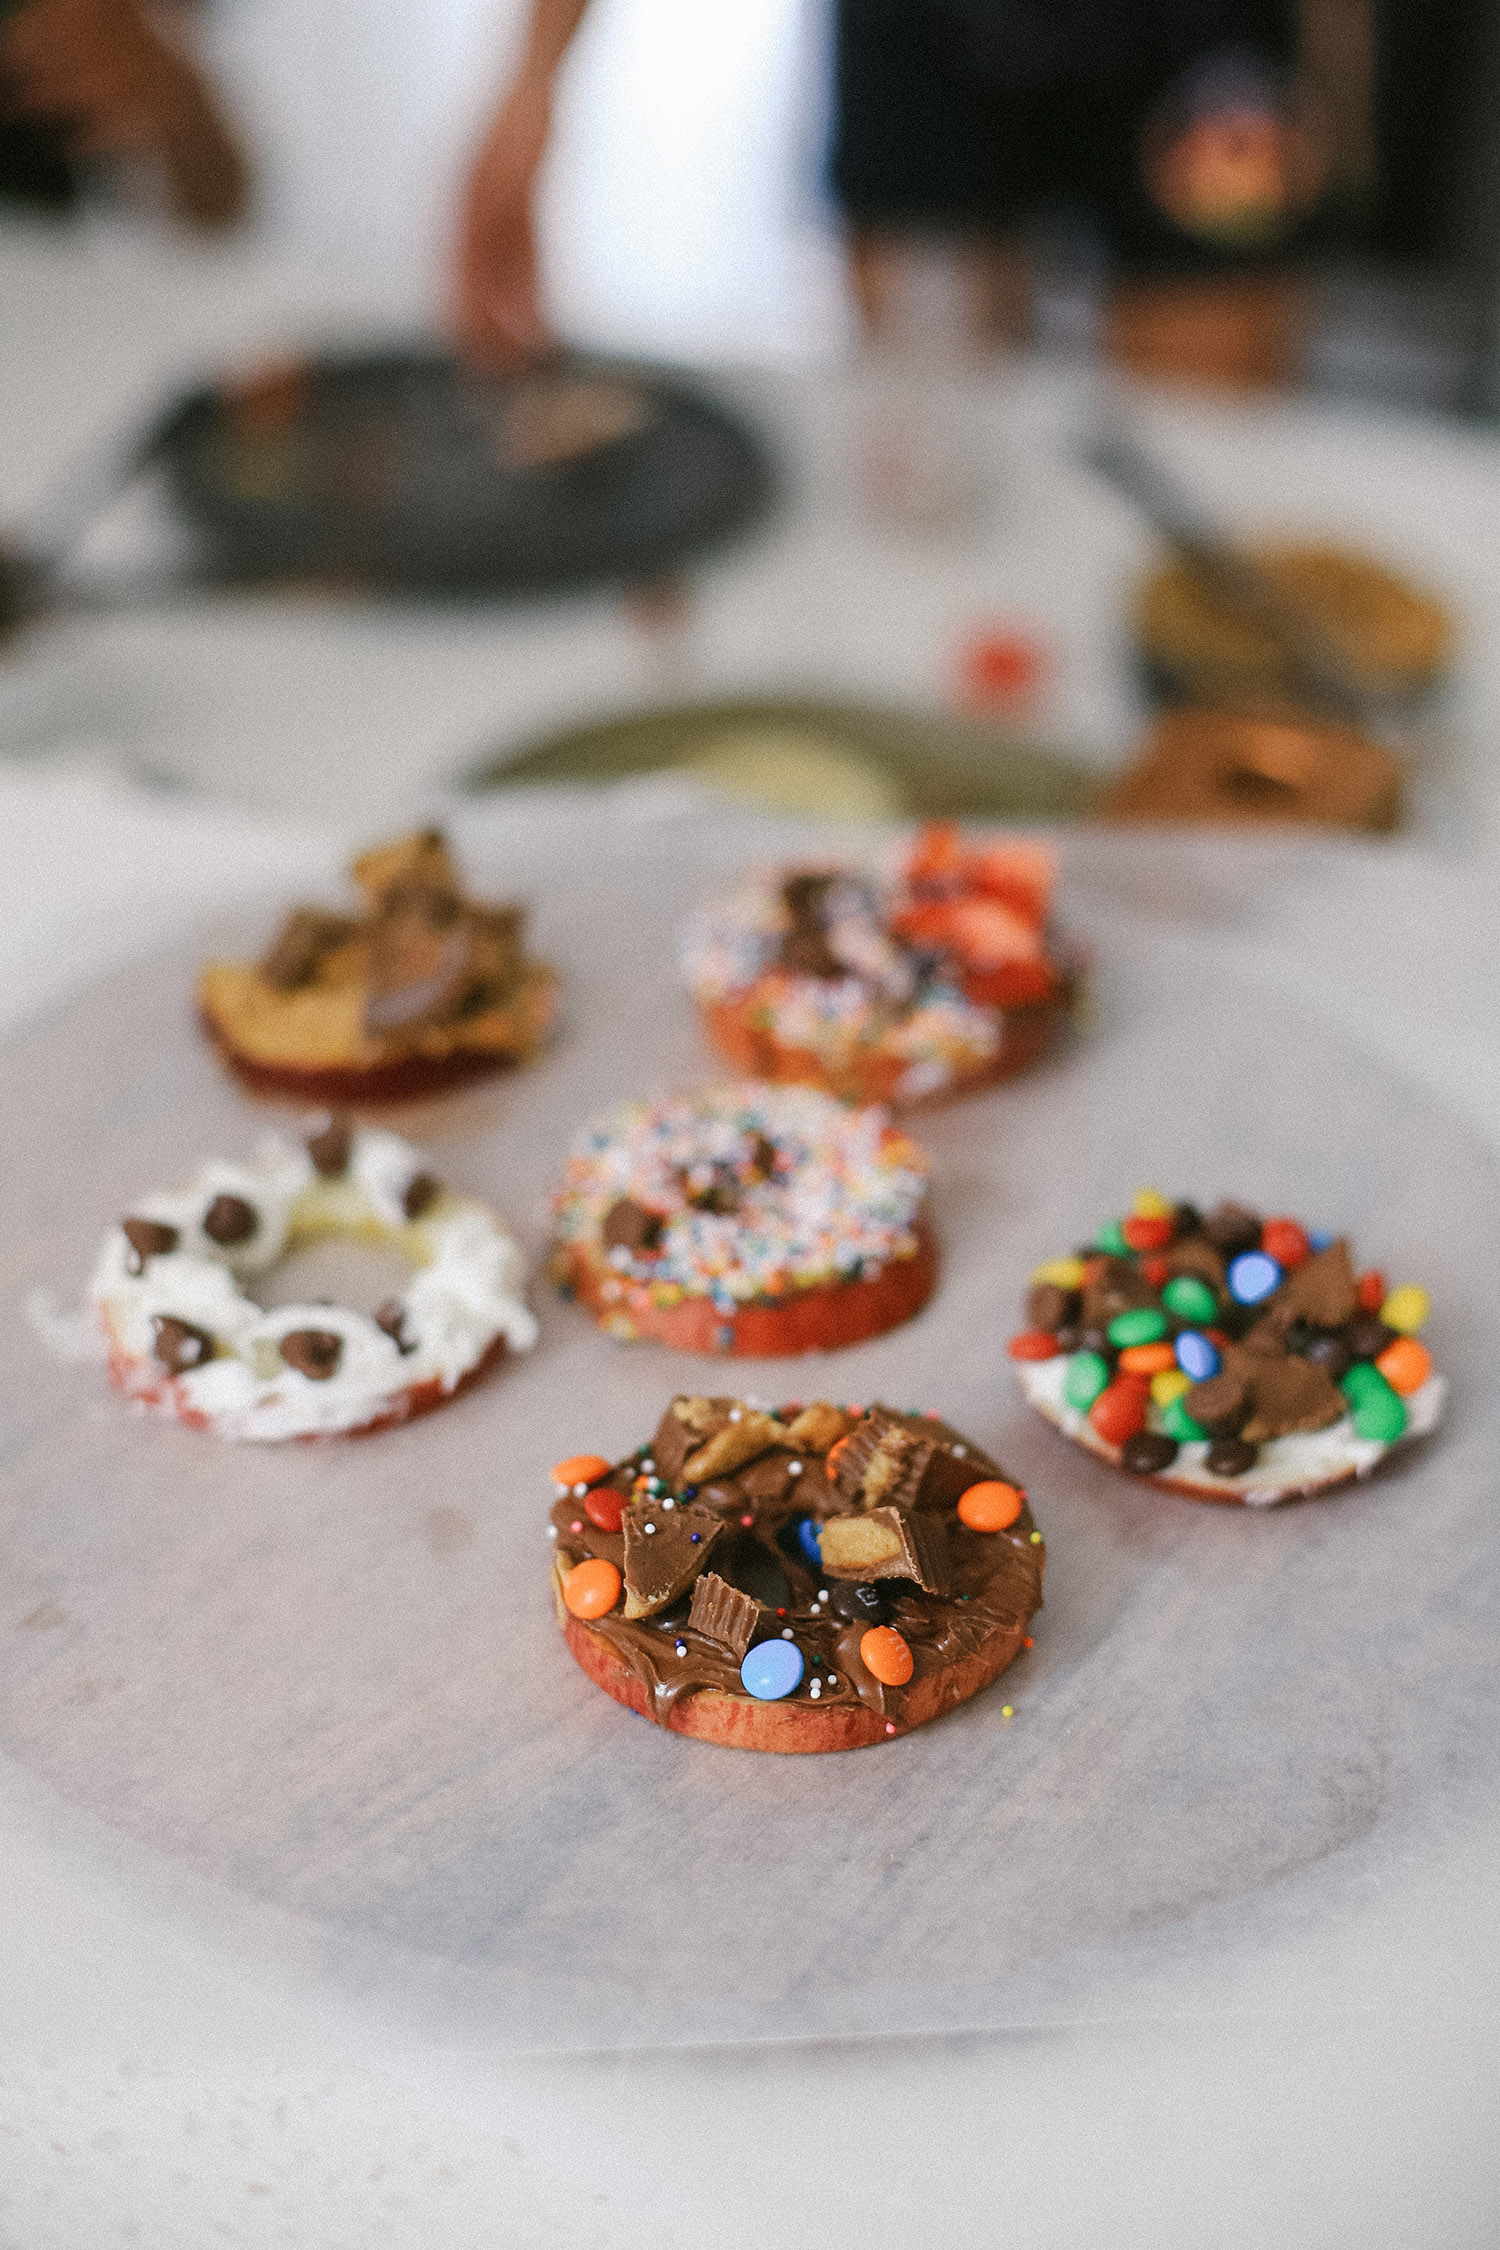 Easy snack ideas for a healthy sweet snacktivity for kids! Apple Donut fun recipe for kids from top Florida blogger Tabitha Blue of Fresh Mommy Blog | Apple Donuts by popular Florida motherhood blog, Fresh Mommy Blog: image of apple slices on a plate topped with things like Nutella, sprinkles, marshmallow fluff, chocolate chips, and peanut butter fluff.